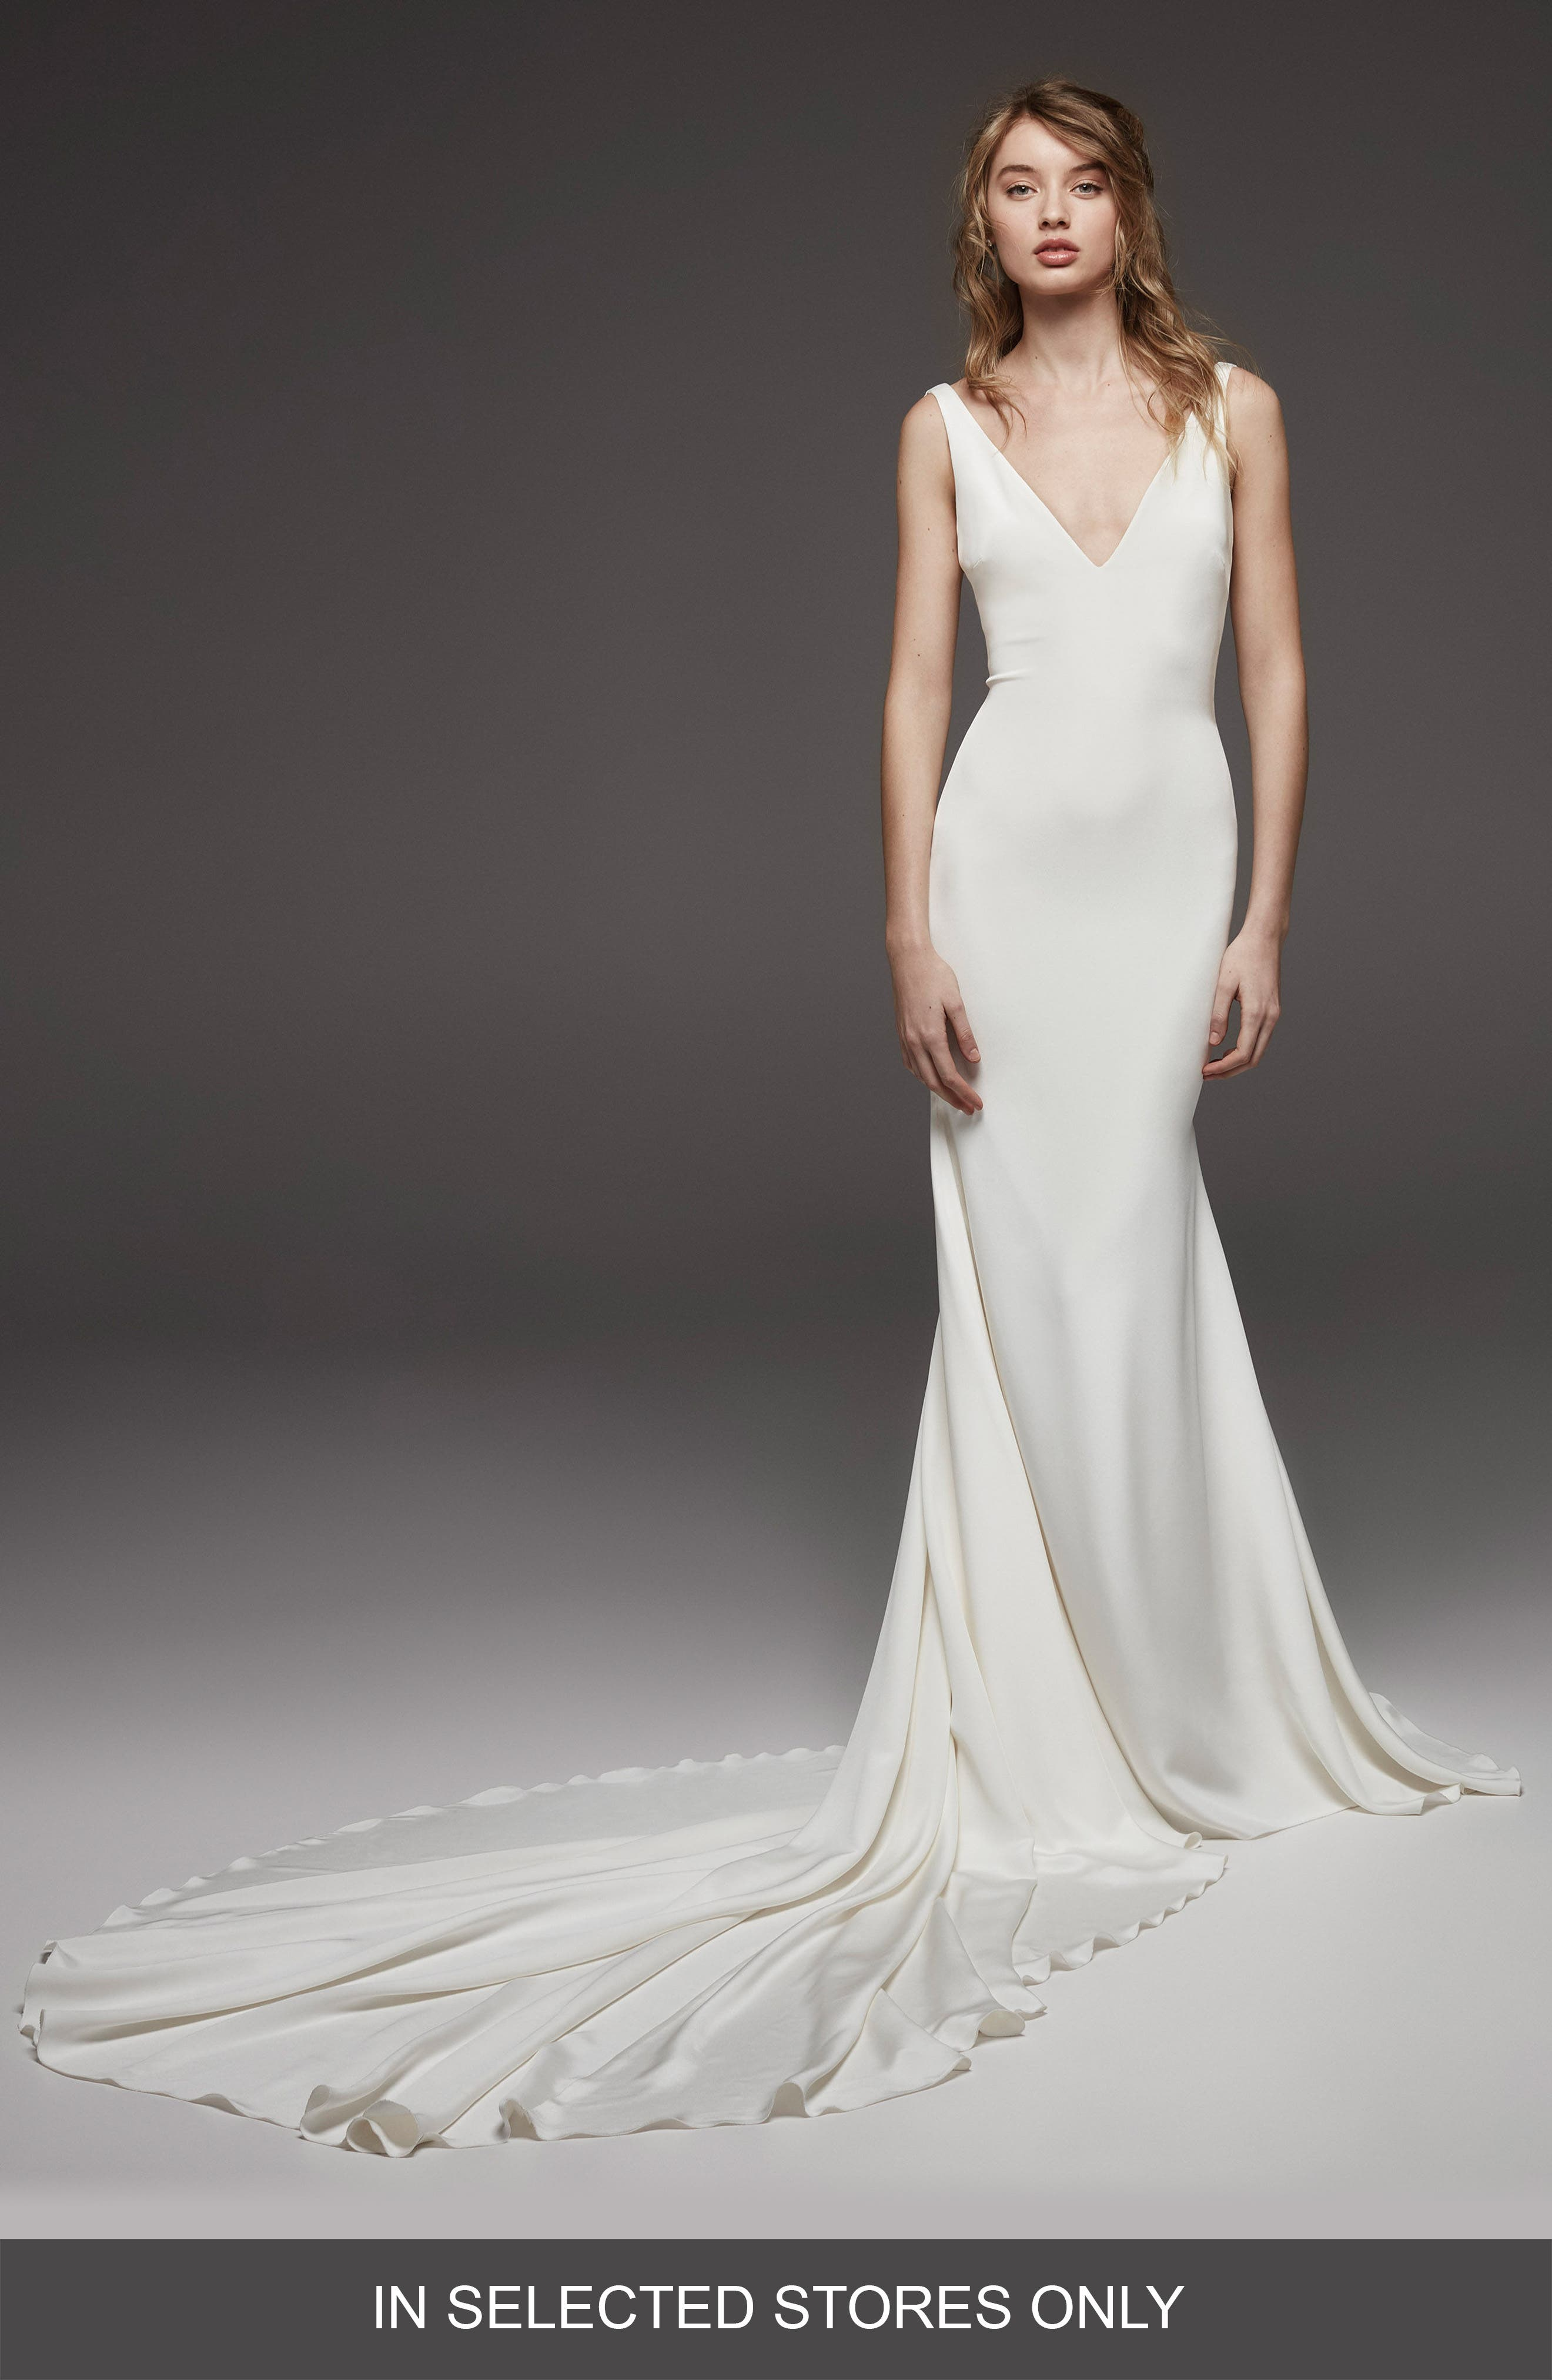 Hispalis Crepe Cowl Back Gown,                         Main,                         color, OFF WHITE